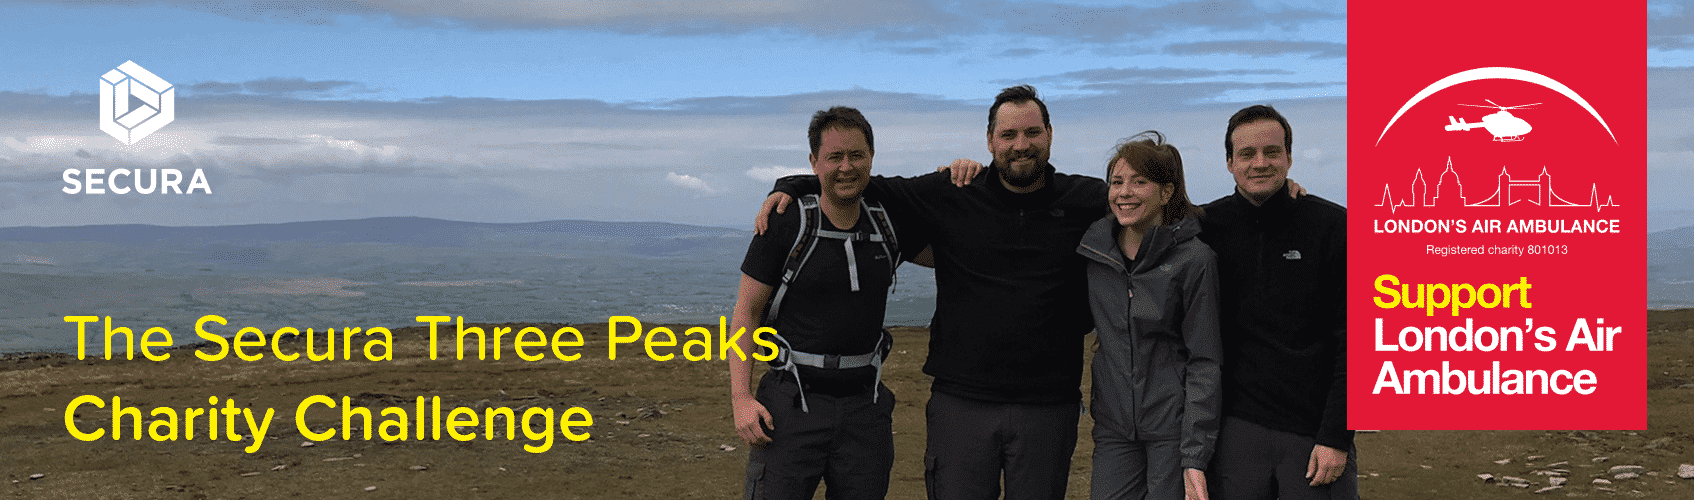 Three Peaks Charity Challenge Training Weekend Hiking for London's Air Ambulance